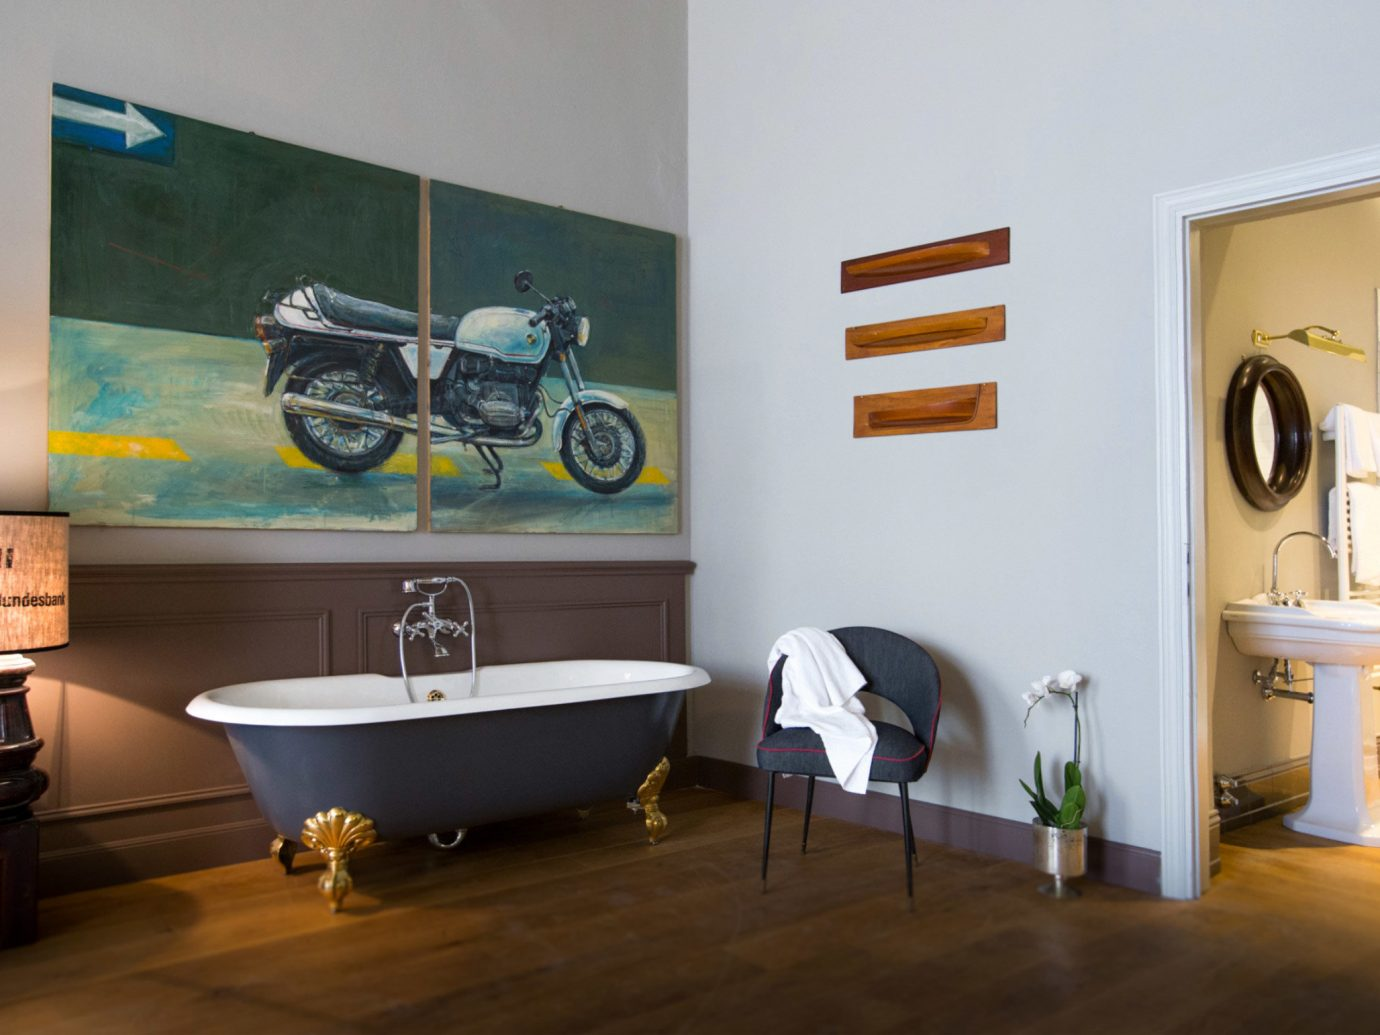 Bath City Design Florence Hotels Italy Living Luxury Suite indoor wall floor room property home interior design living room furniture